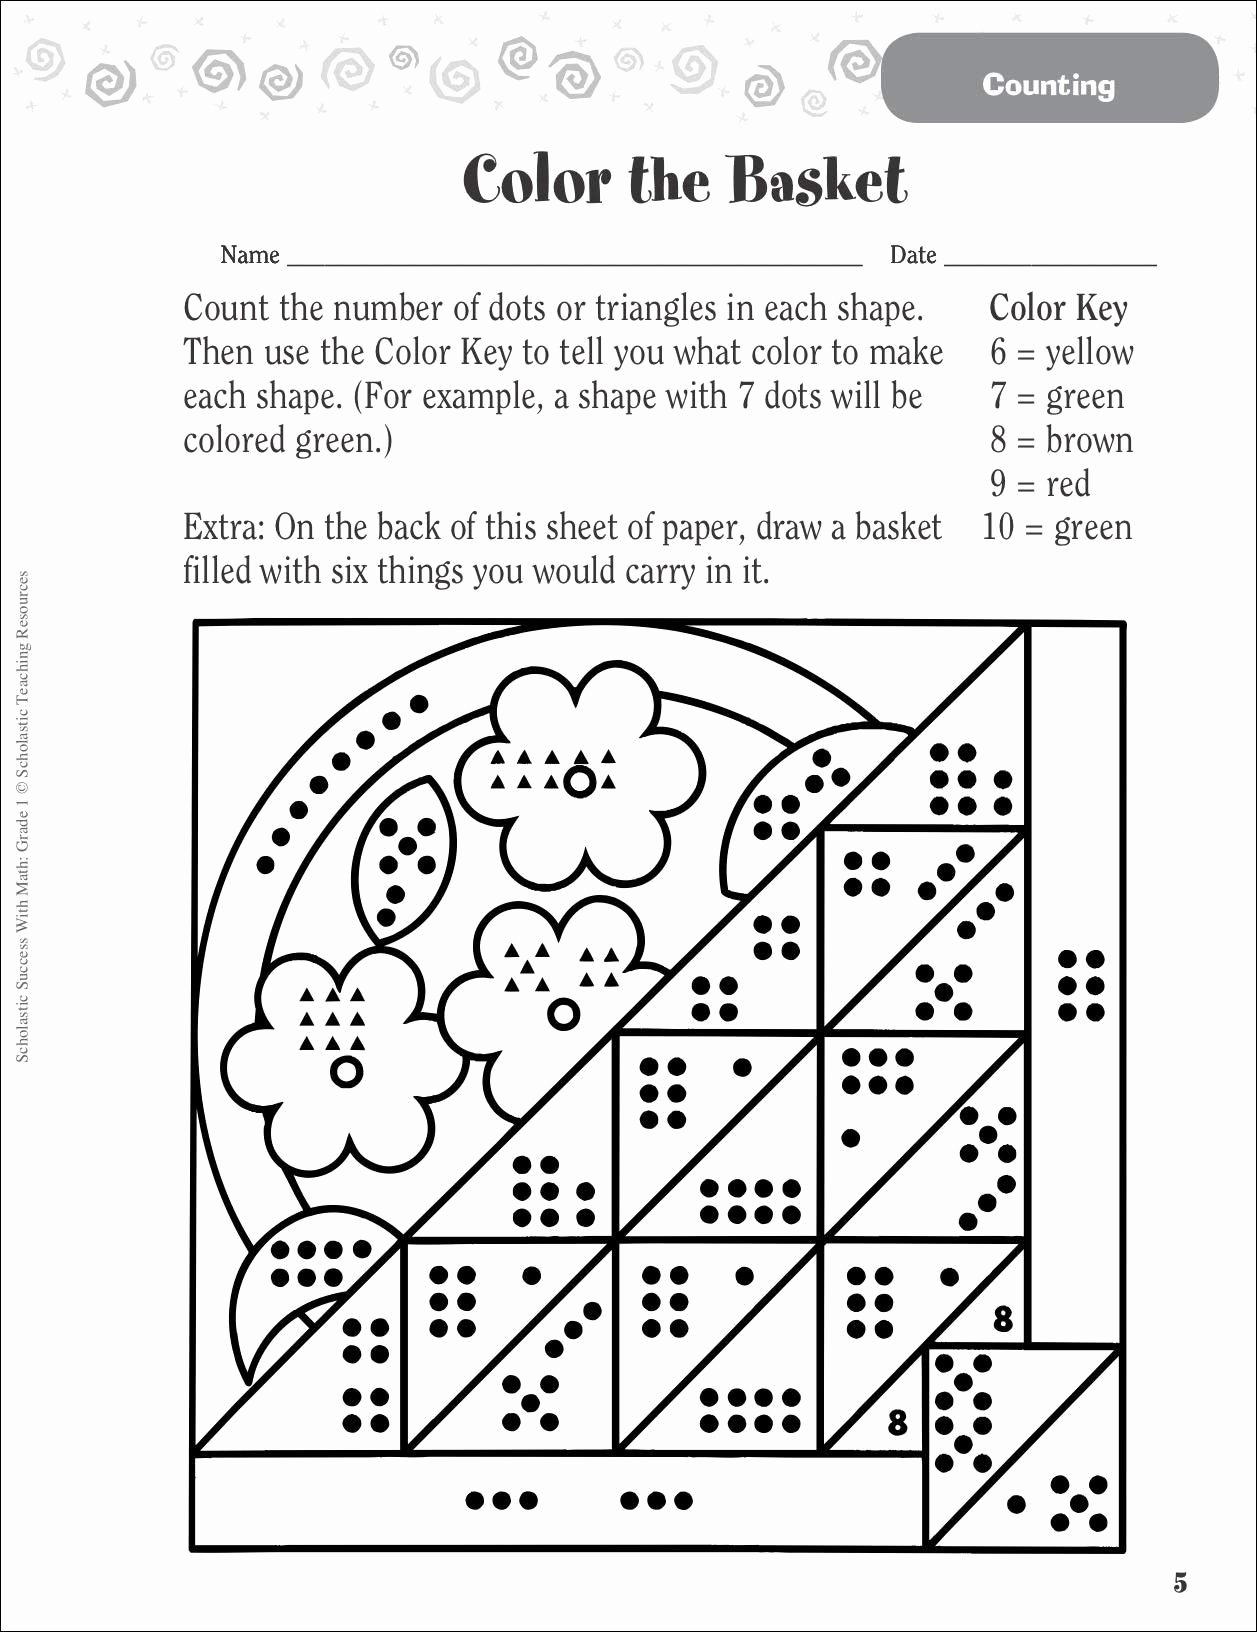 Multiplication Worksheets for Beginners Best Of Worksheets Decimal Meaning Identifying theme Worksheets